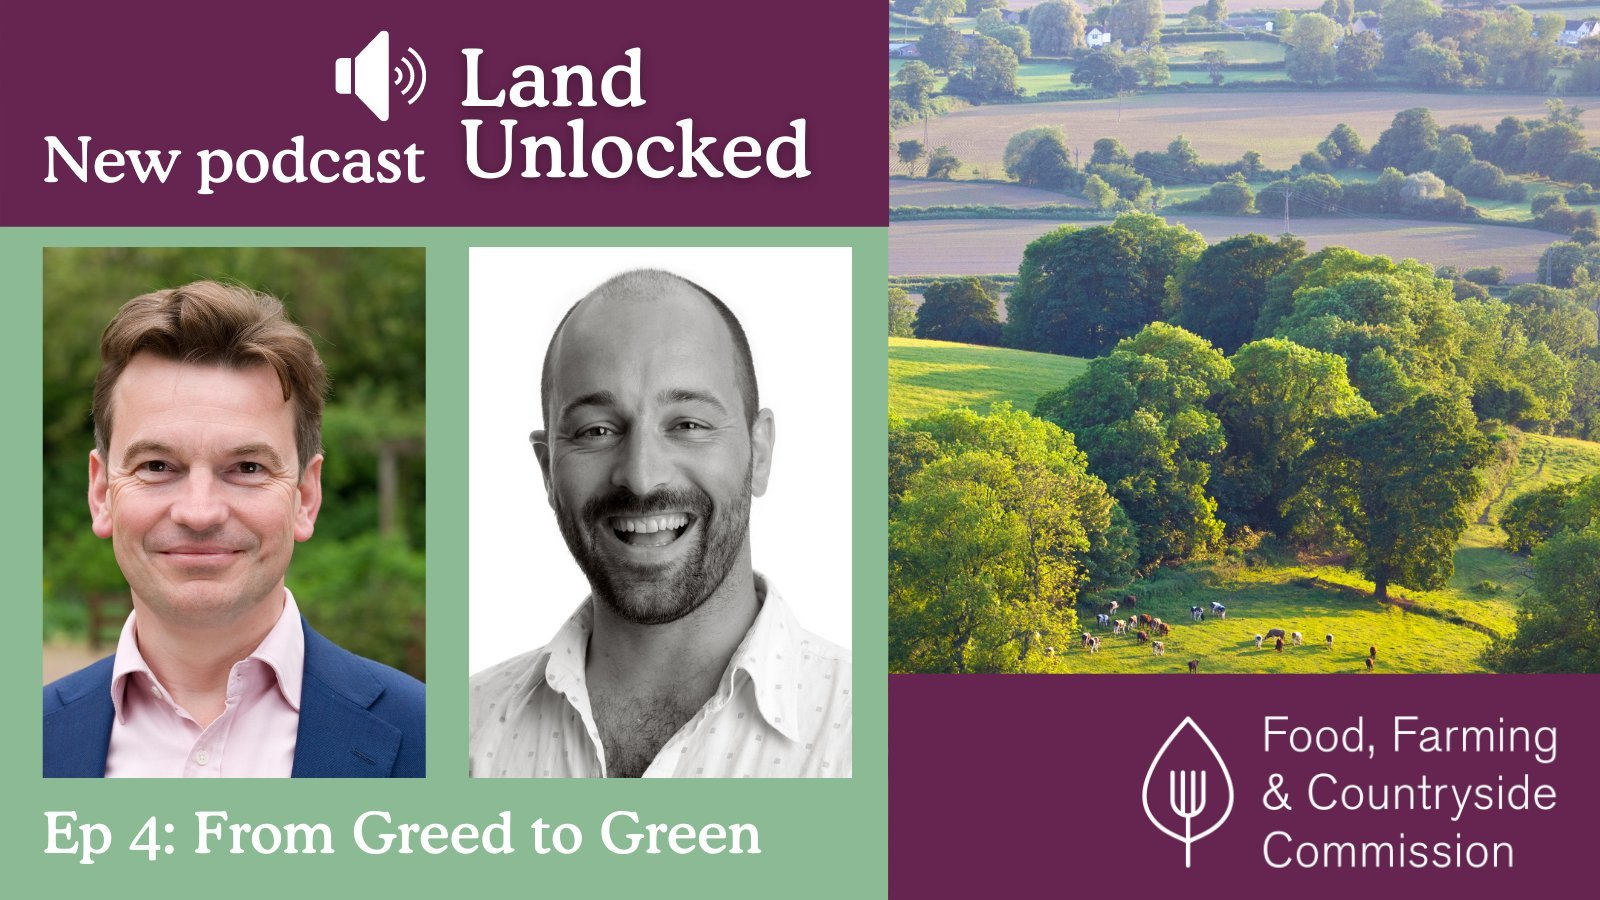 Land Unlocked - Ep 4 From greed to green